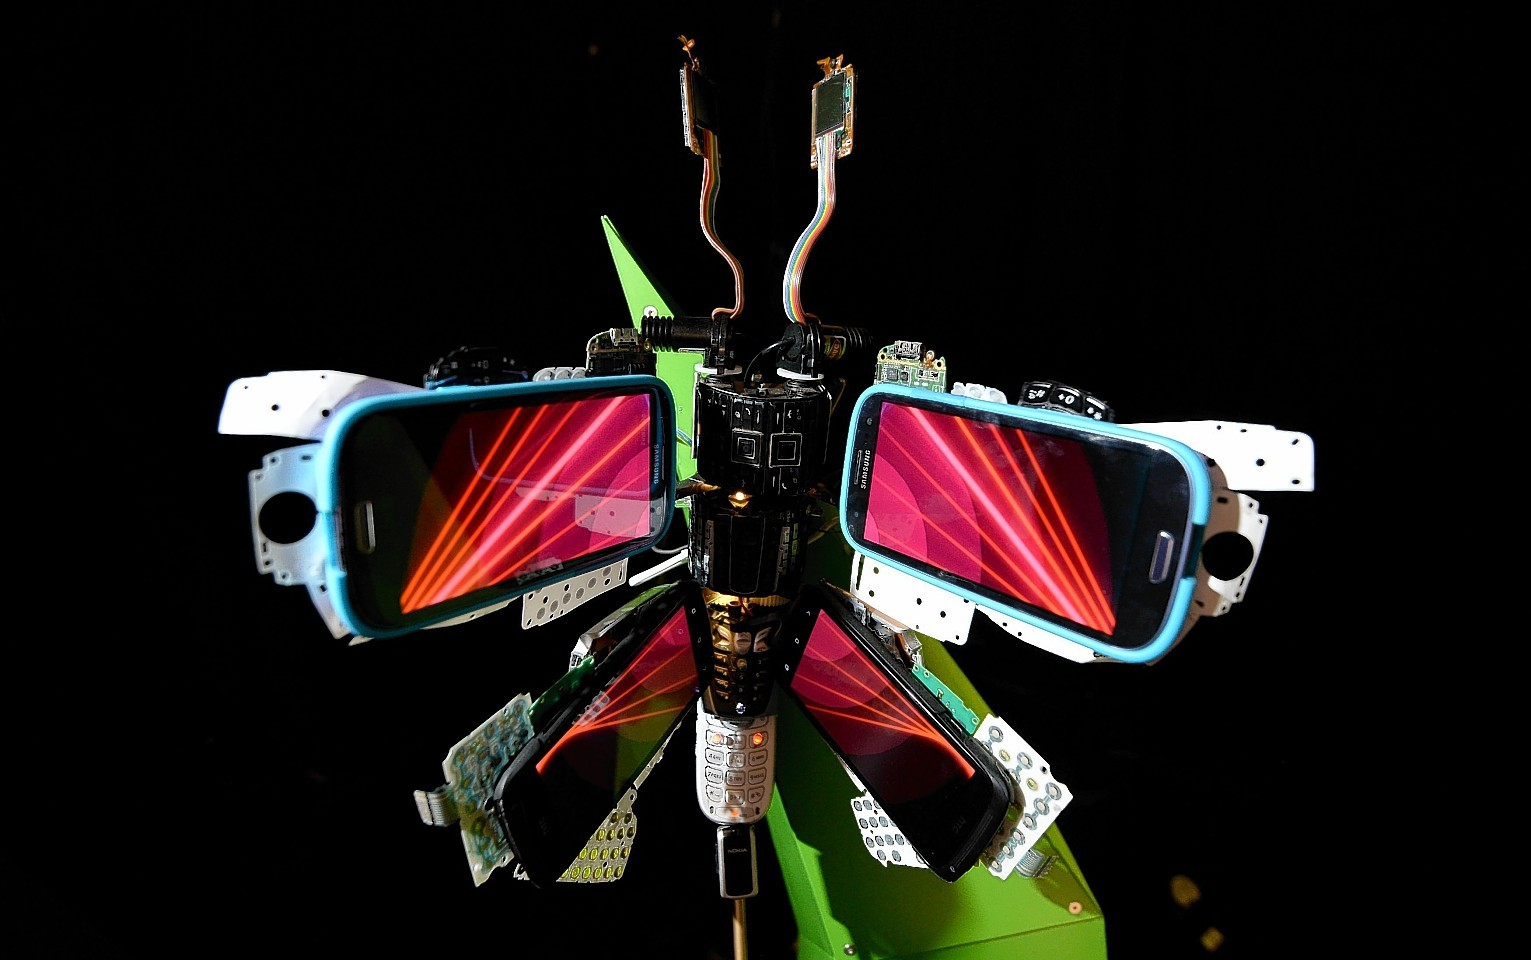 General view of a Digital butterfly commissioned by O2 Recycle which has been made out of smartphone components.